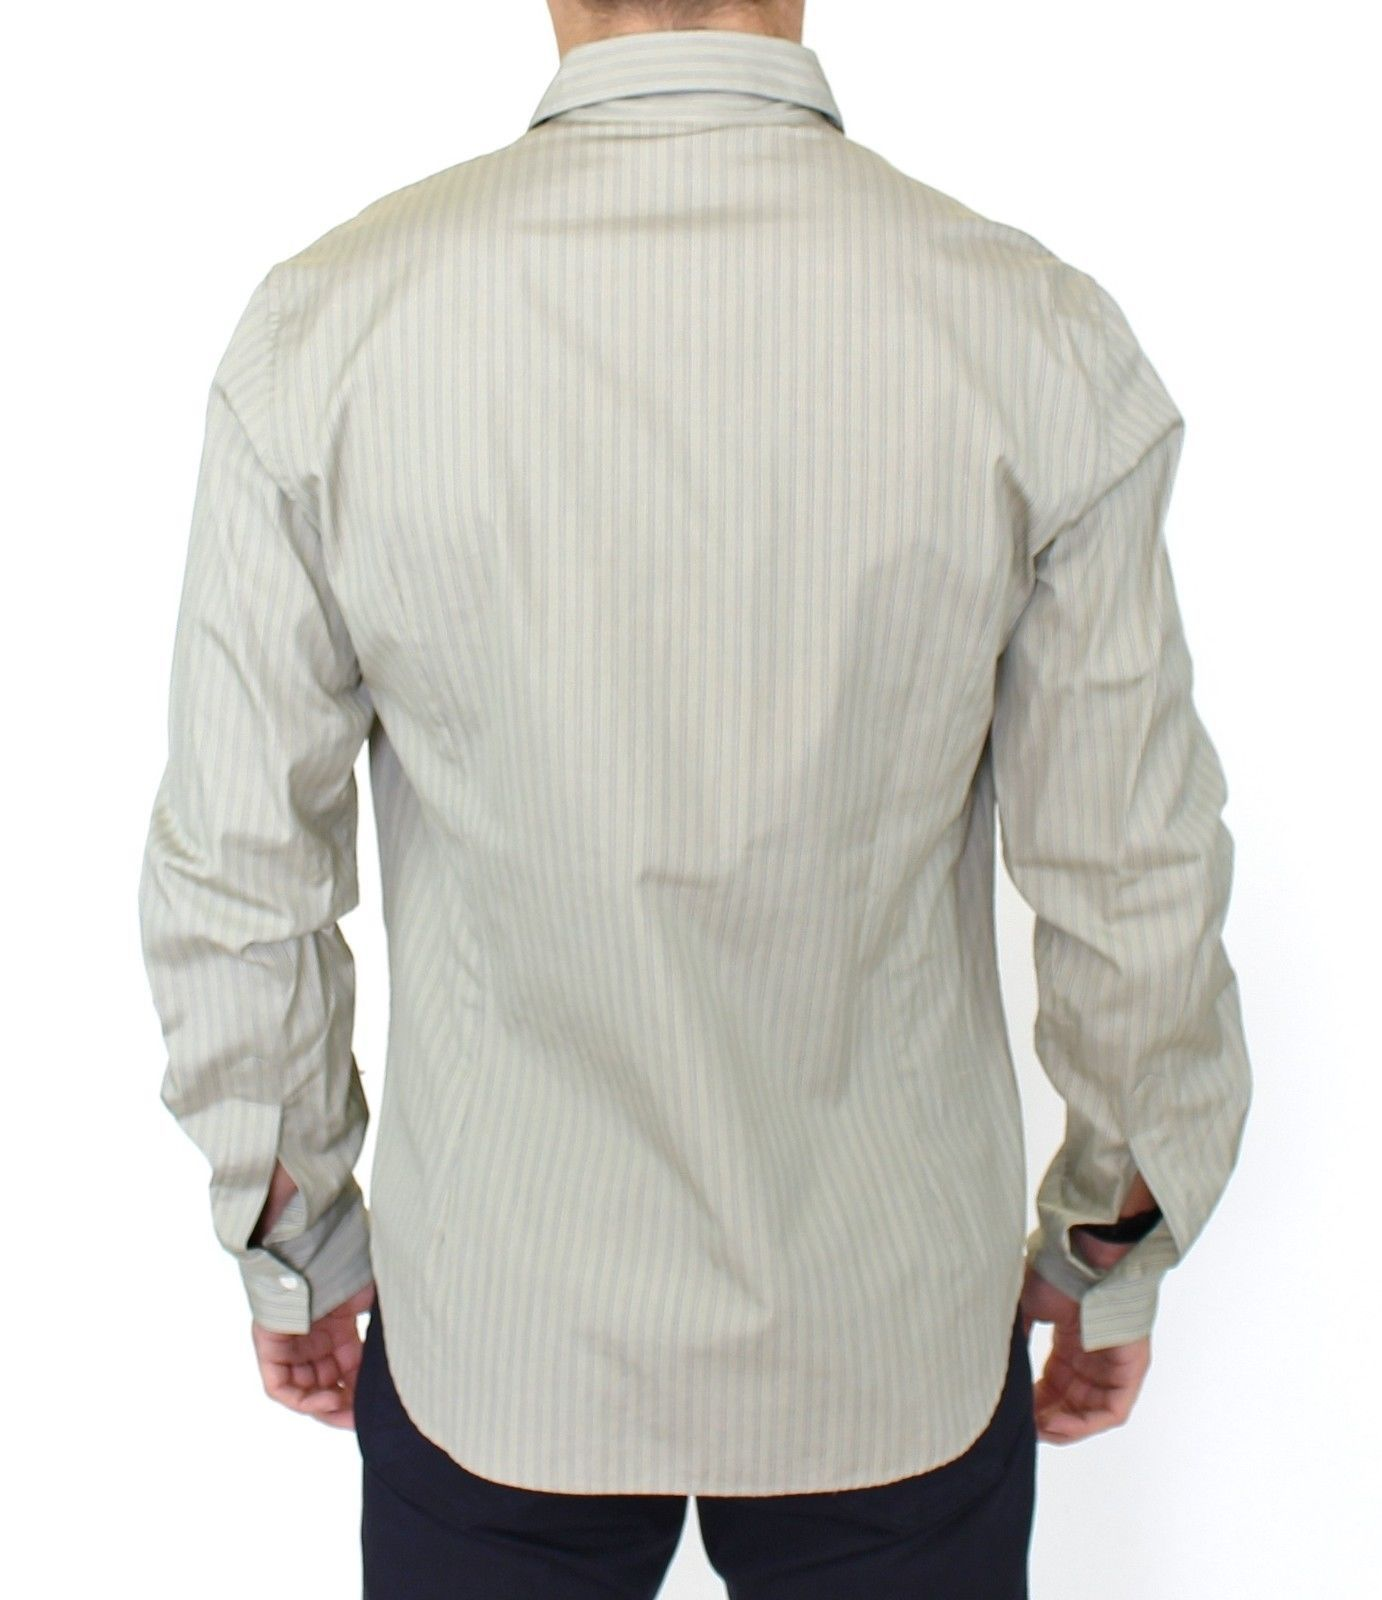 Ermanno Scervino Green Striped Cotton Casual Long Sleeve Shirt